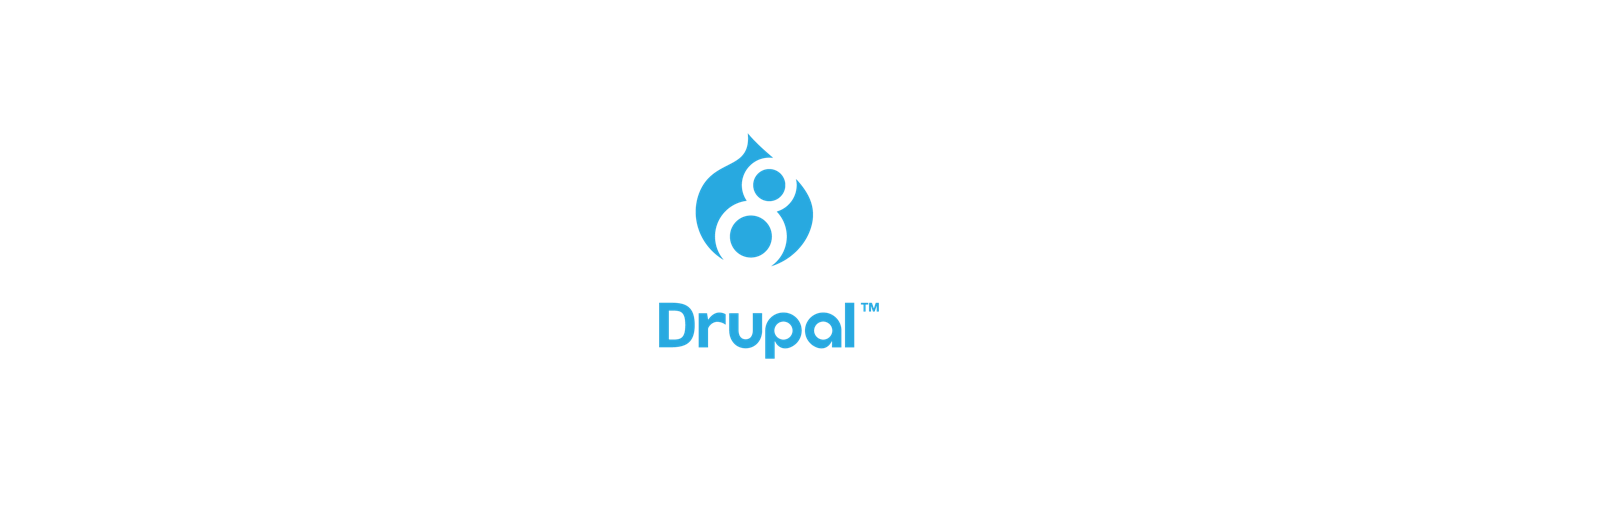 Drupal 8 Entity Validation and Typed Data Explained — SitePoint